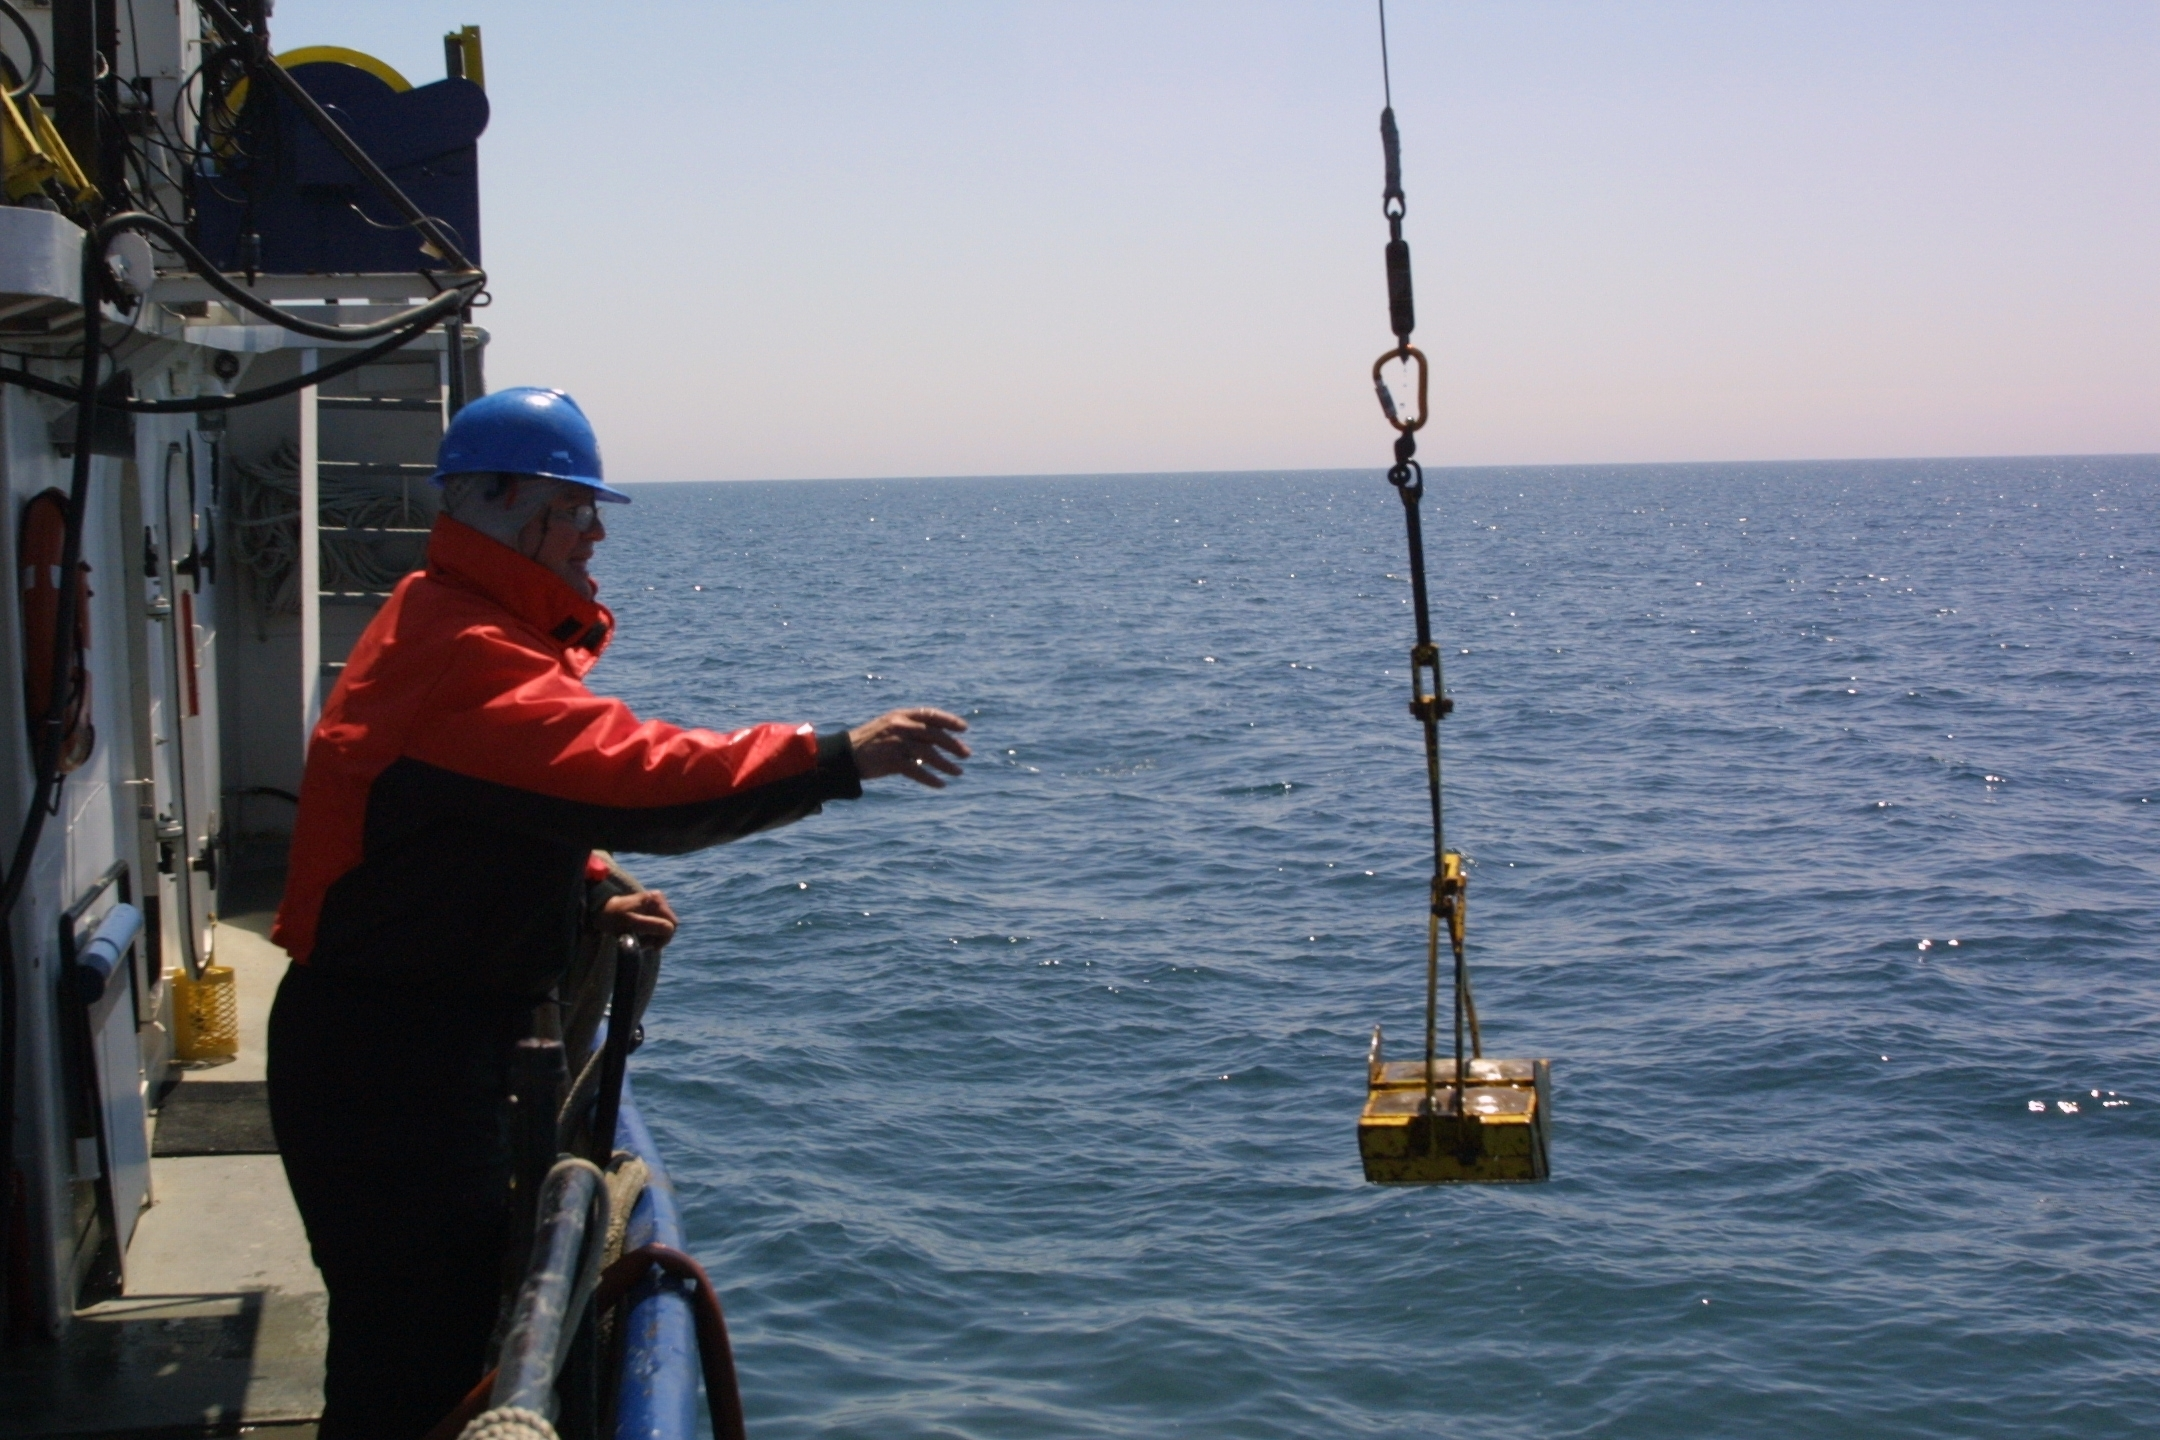 University of Michigan researcher David Jude collecting samples on Lake Michigan in 2009, during a study of quagga mussels. Photo by Jim Erickson